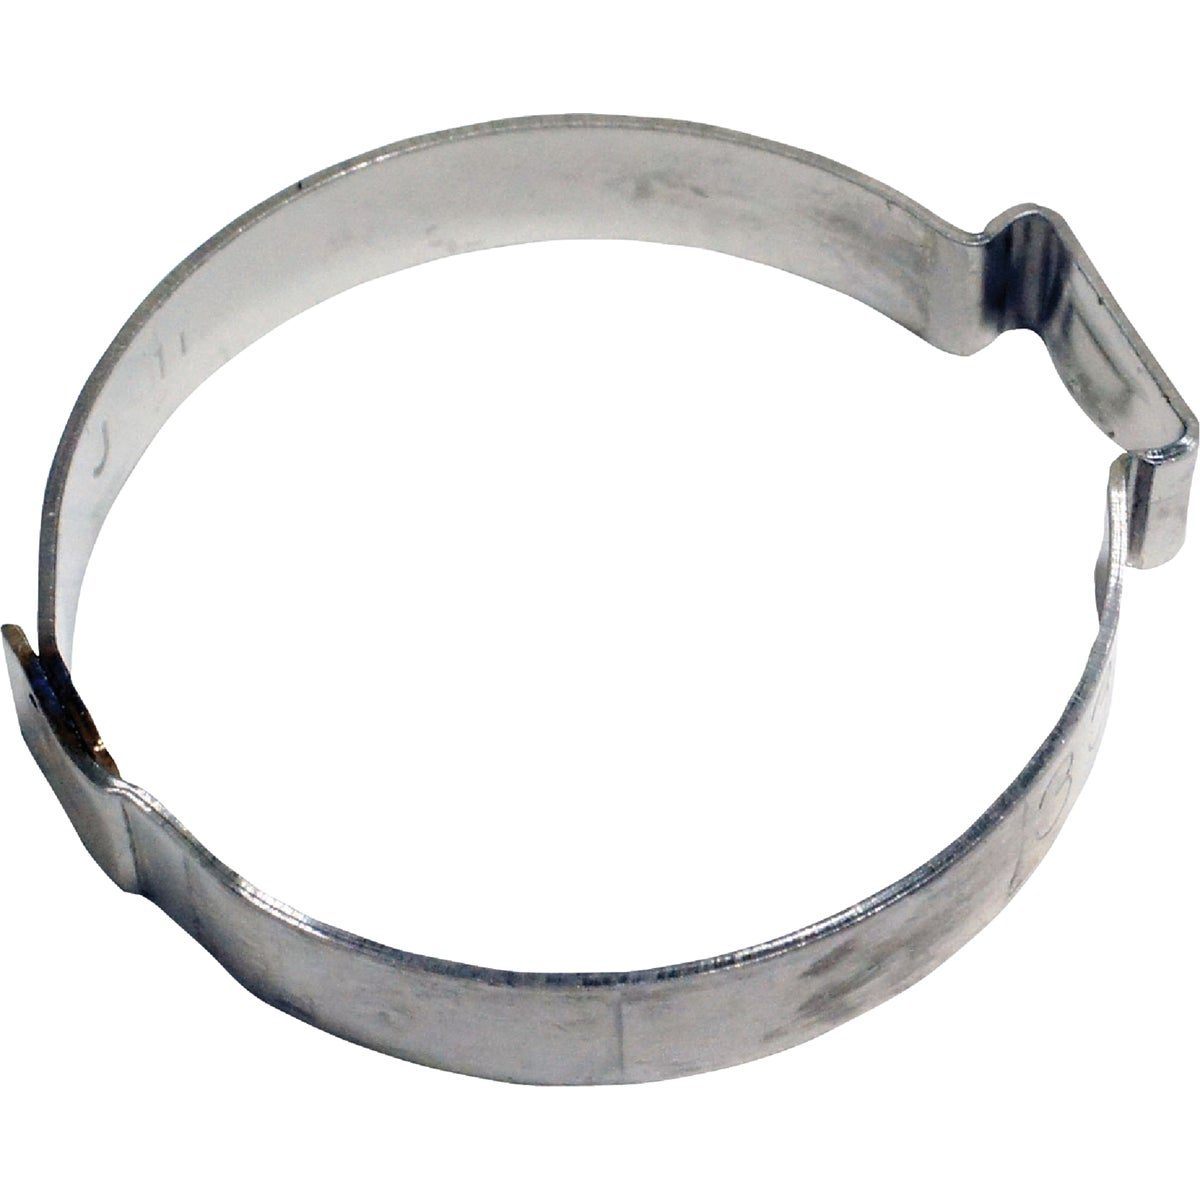 "10PK 1-1/16"" CRIMP CLAMP"